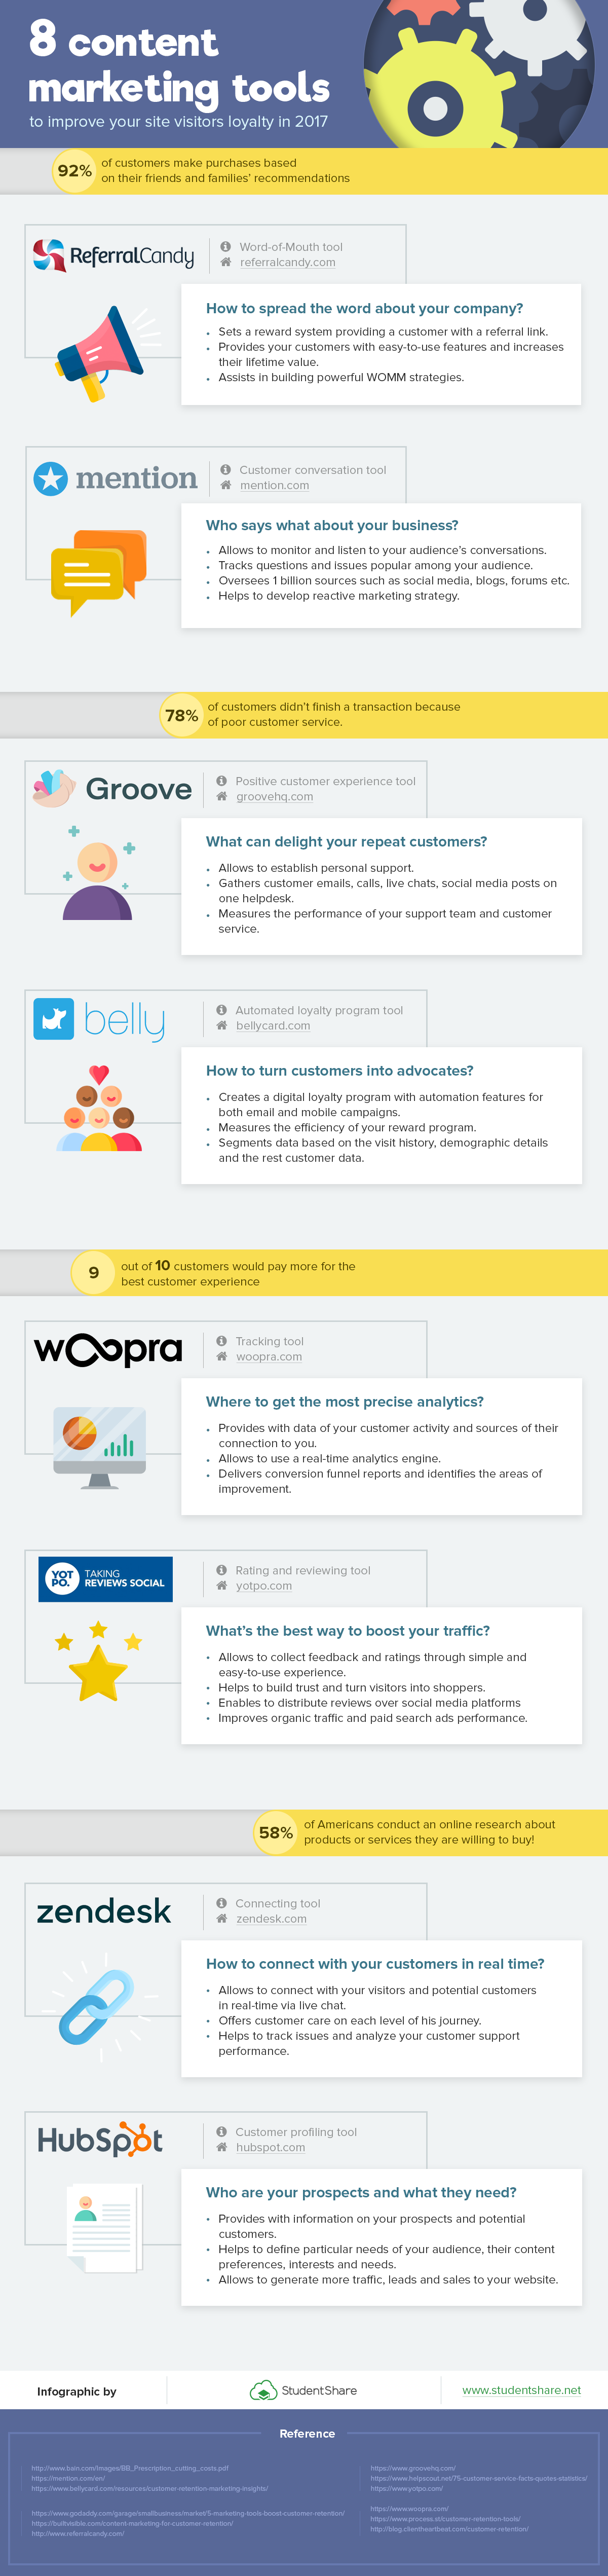 8 Content Marketing Tools To Improve Visitor Loyalty #Infographic